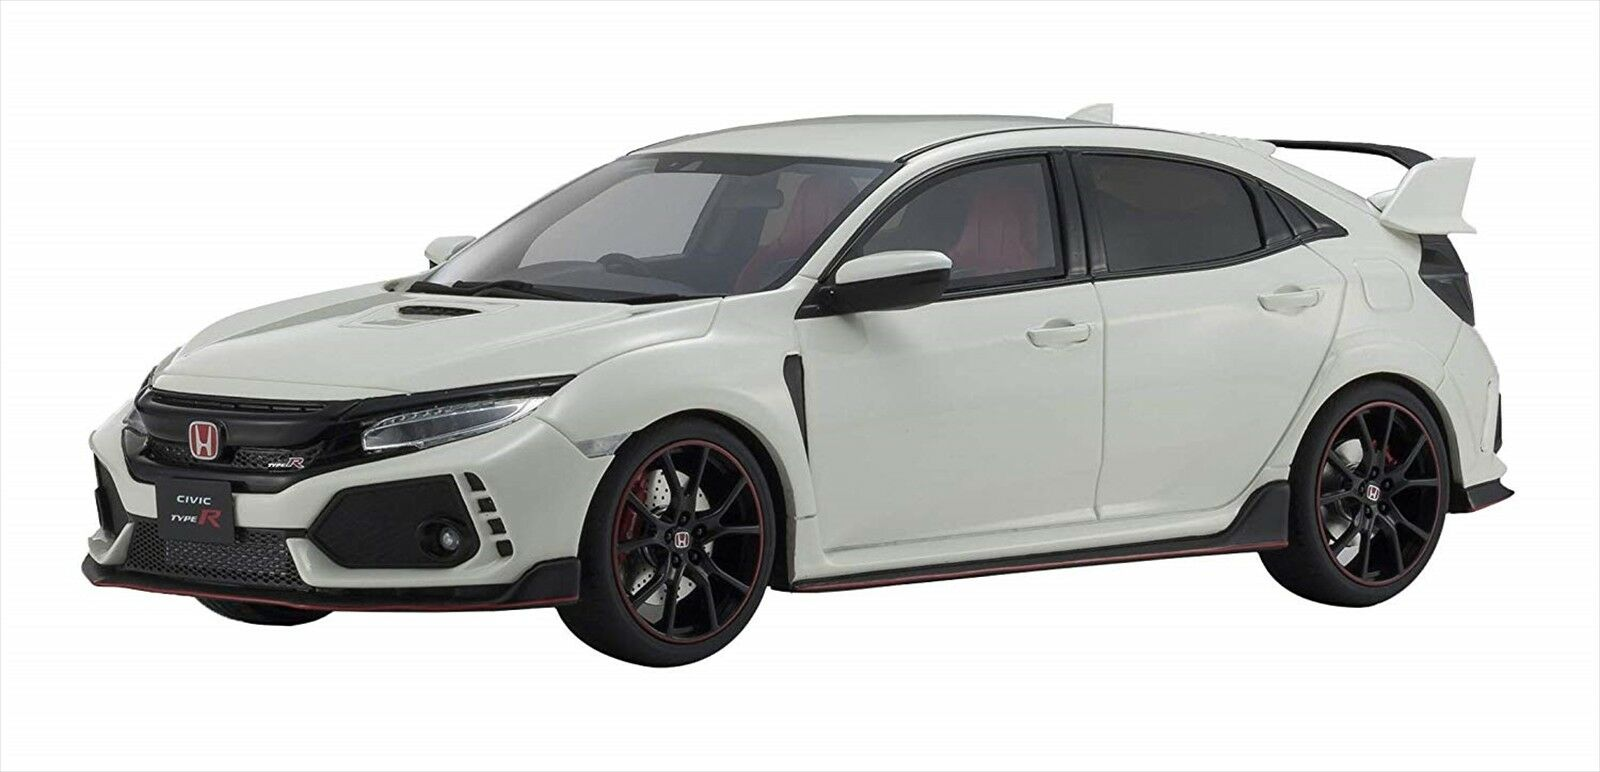 Kyosho KSR18029W SAMURAI 1 18 Honda Civic Type R Championship White From Japan